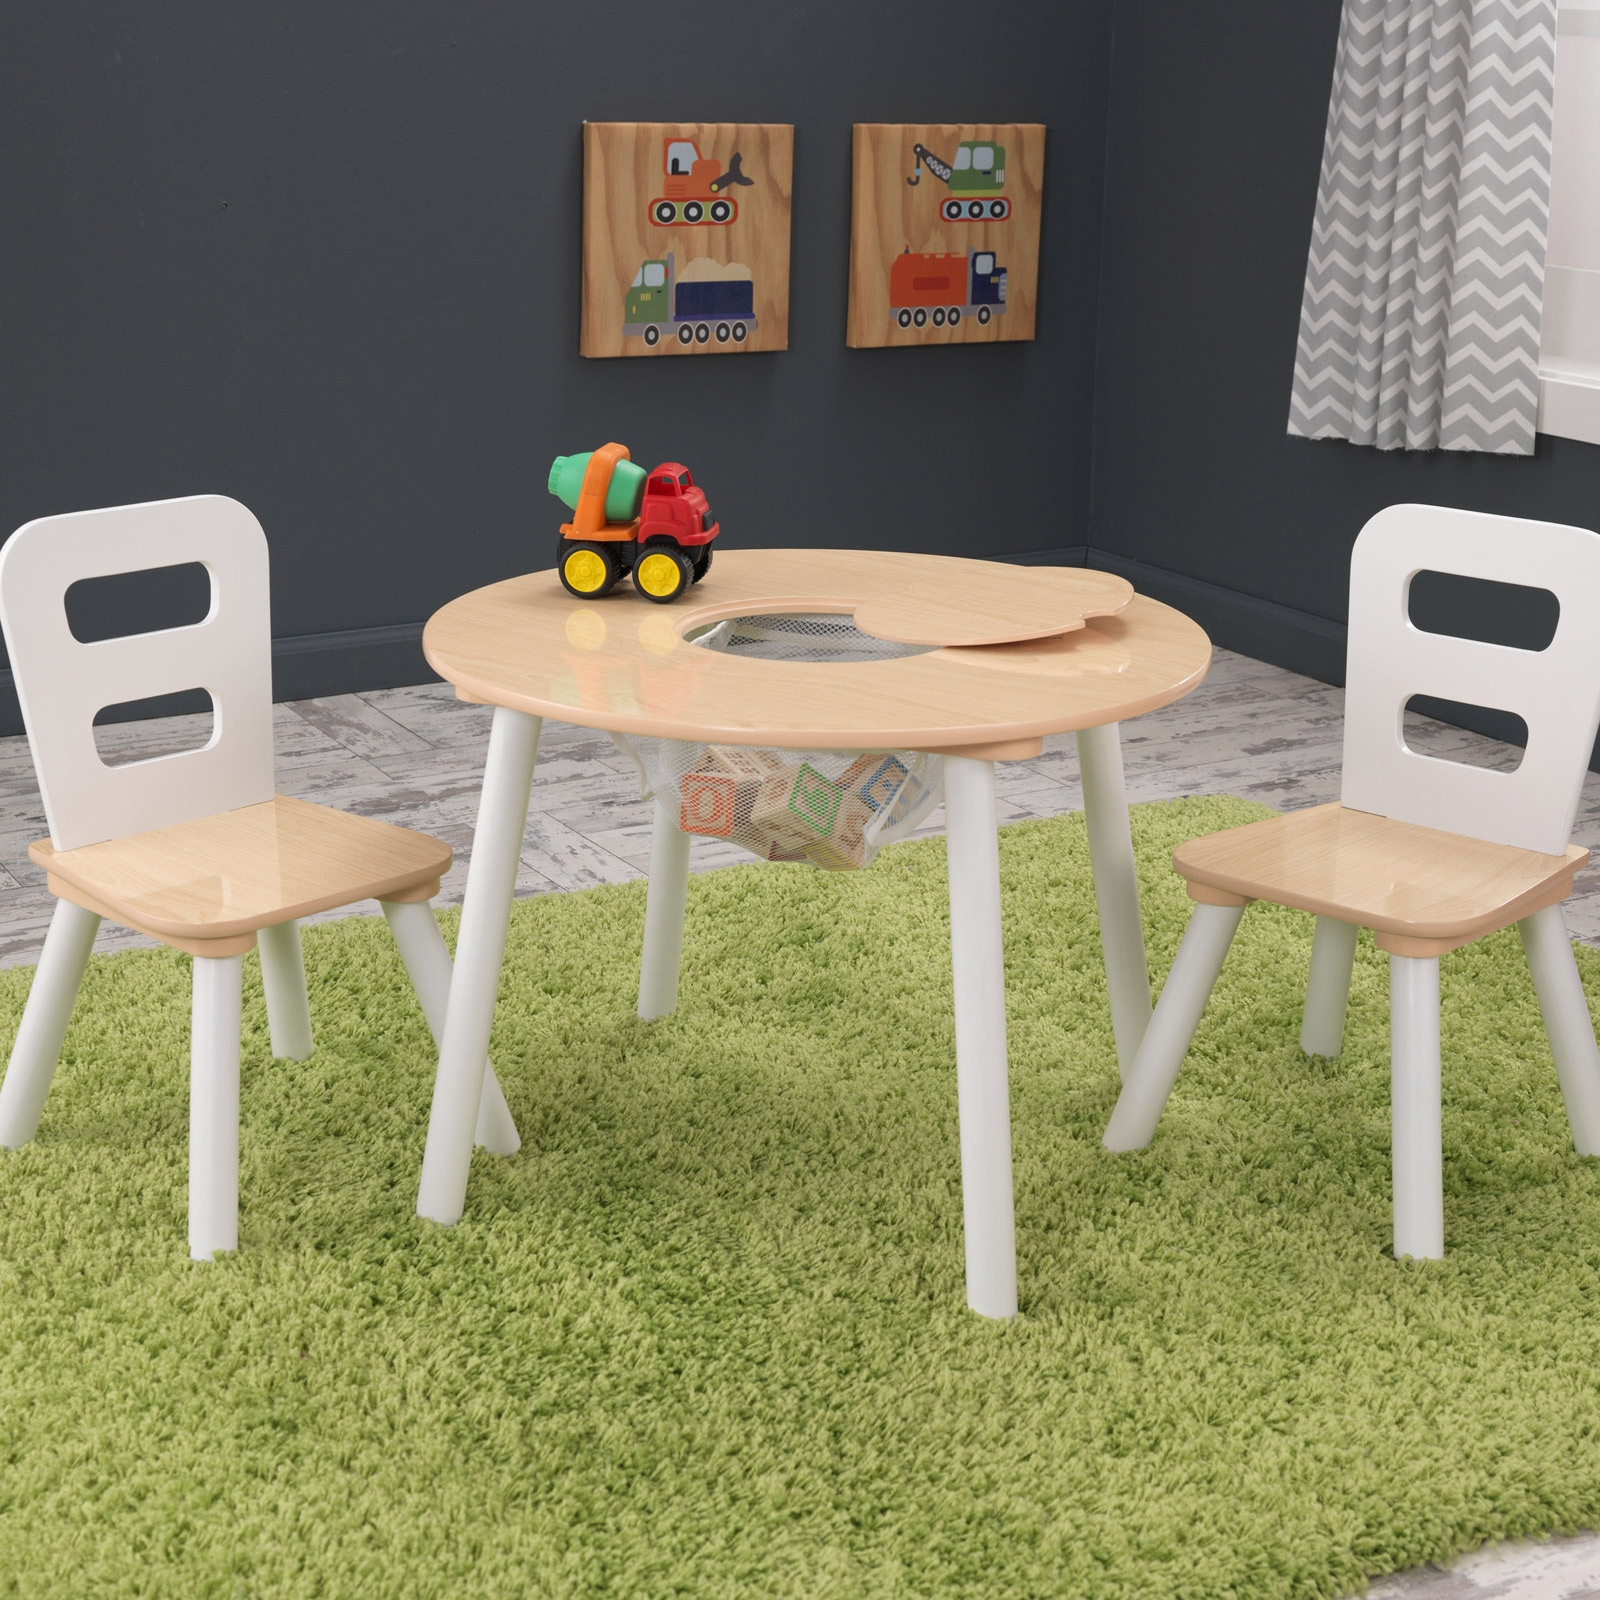 1 Unique De Ensemble Table Et Chaise Pas Cher